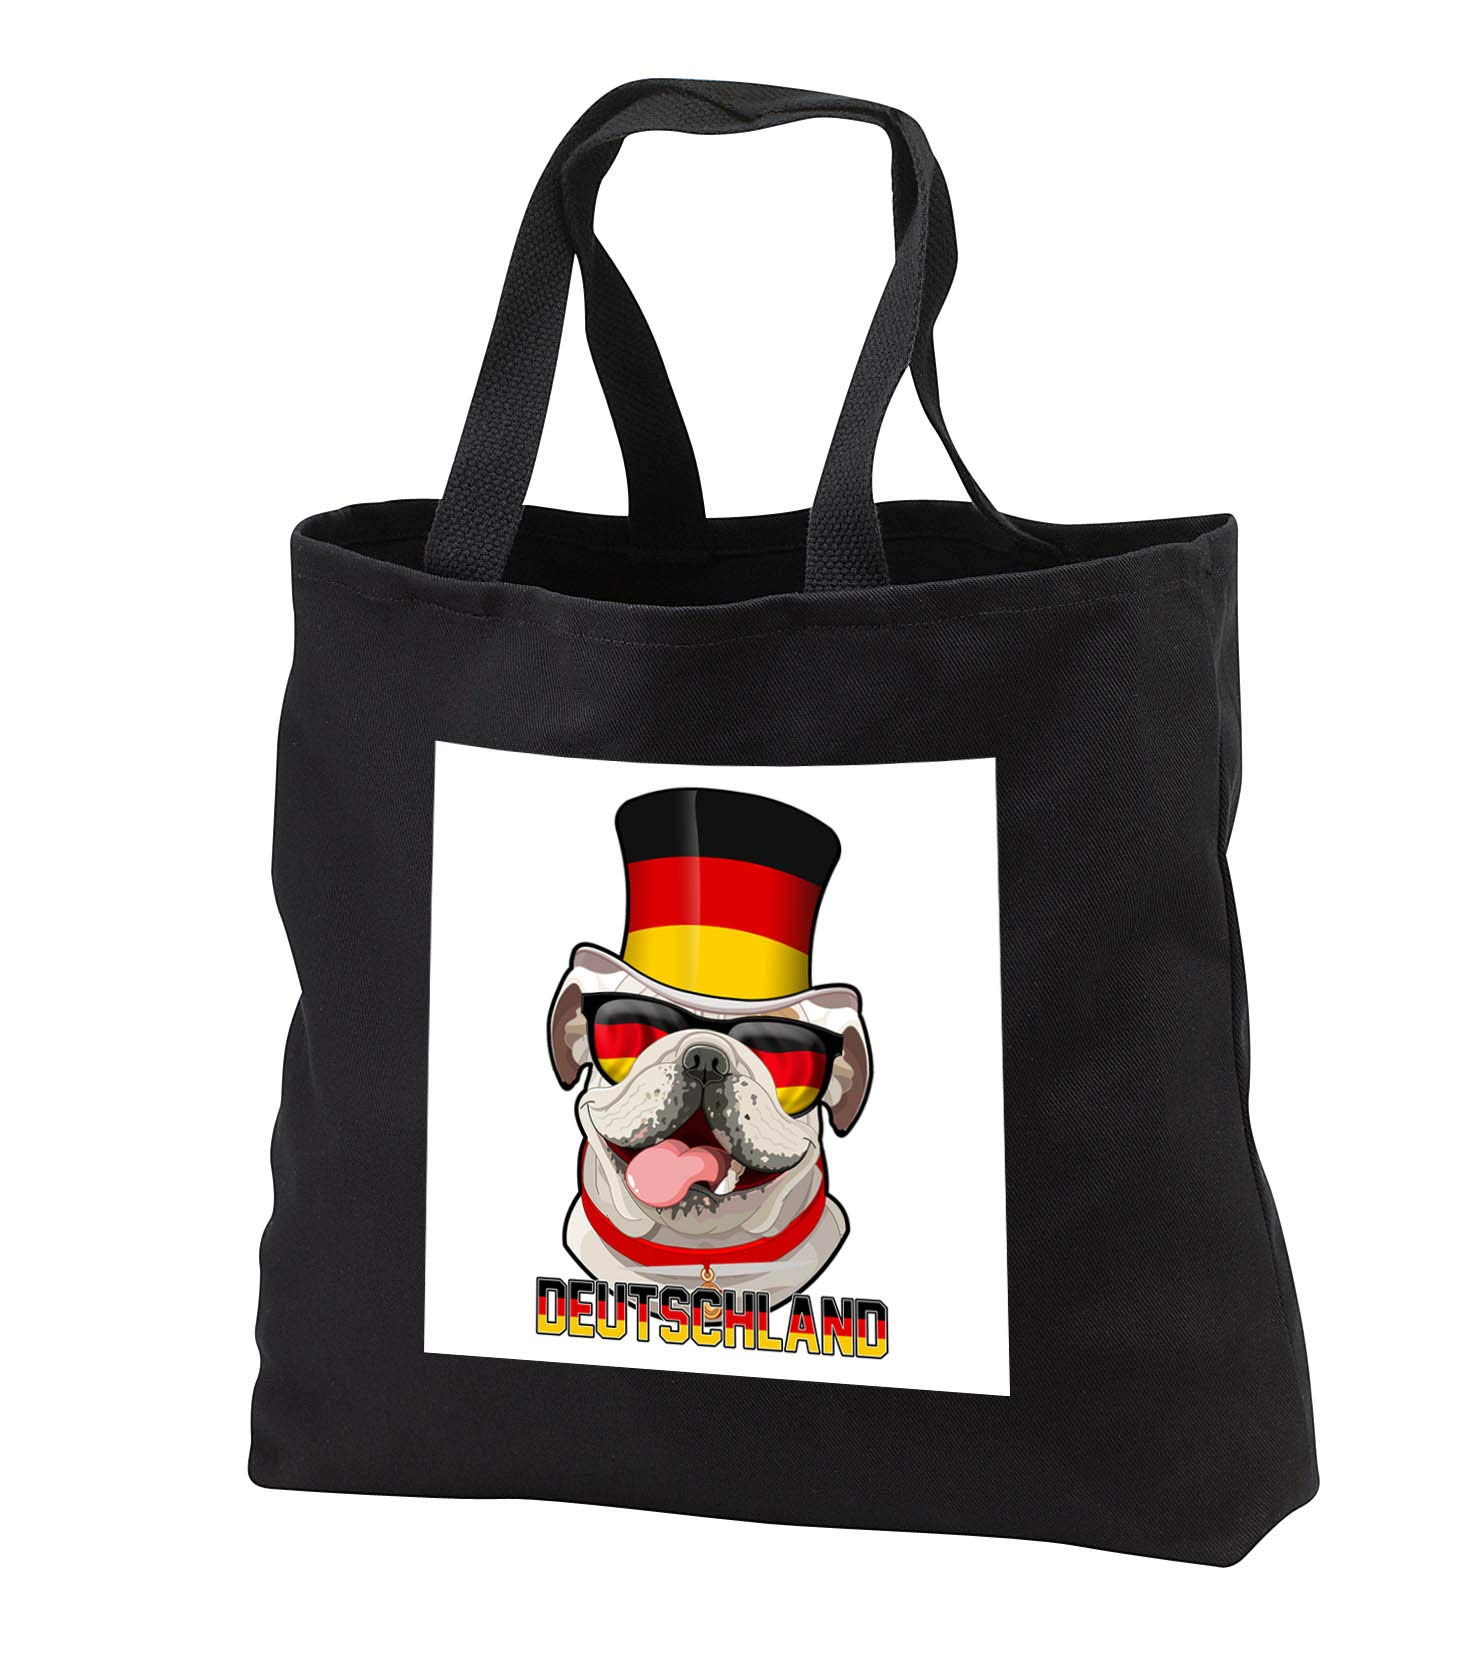 Carsten Reisinger - Illustrations - Germany English Bulldog with German Flag Top Hat and Sunglasses - Tote Bags - Black Tote Bag JUMBO 20w x 15h x 5d (tb_293425_3)